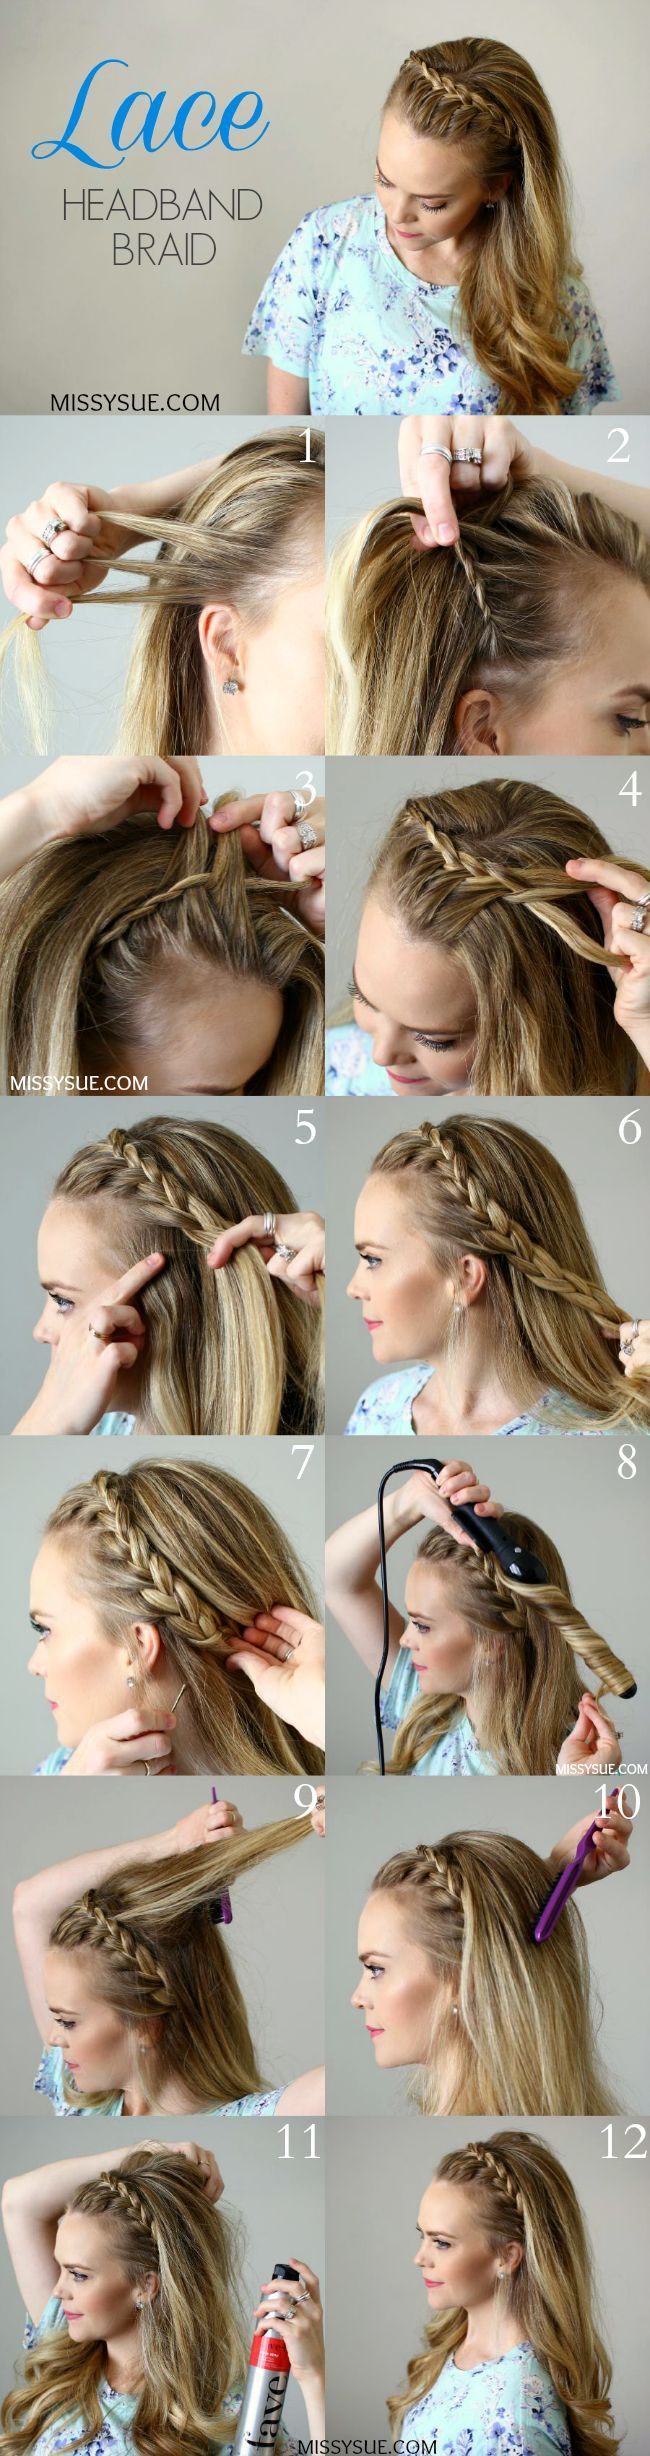 15 Stylish Mermaid Hairstyles to Pair Your Looks | Latest Bob Hairstyles